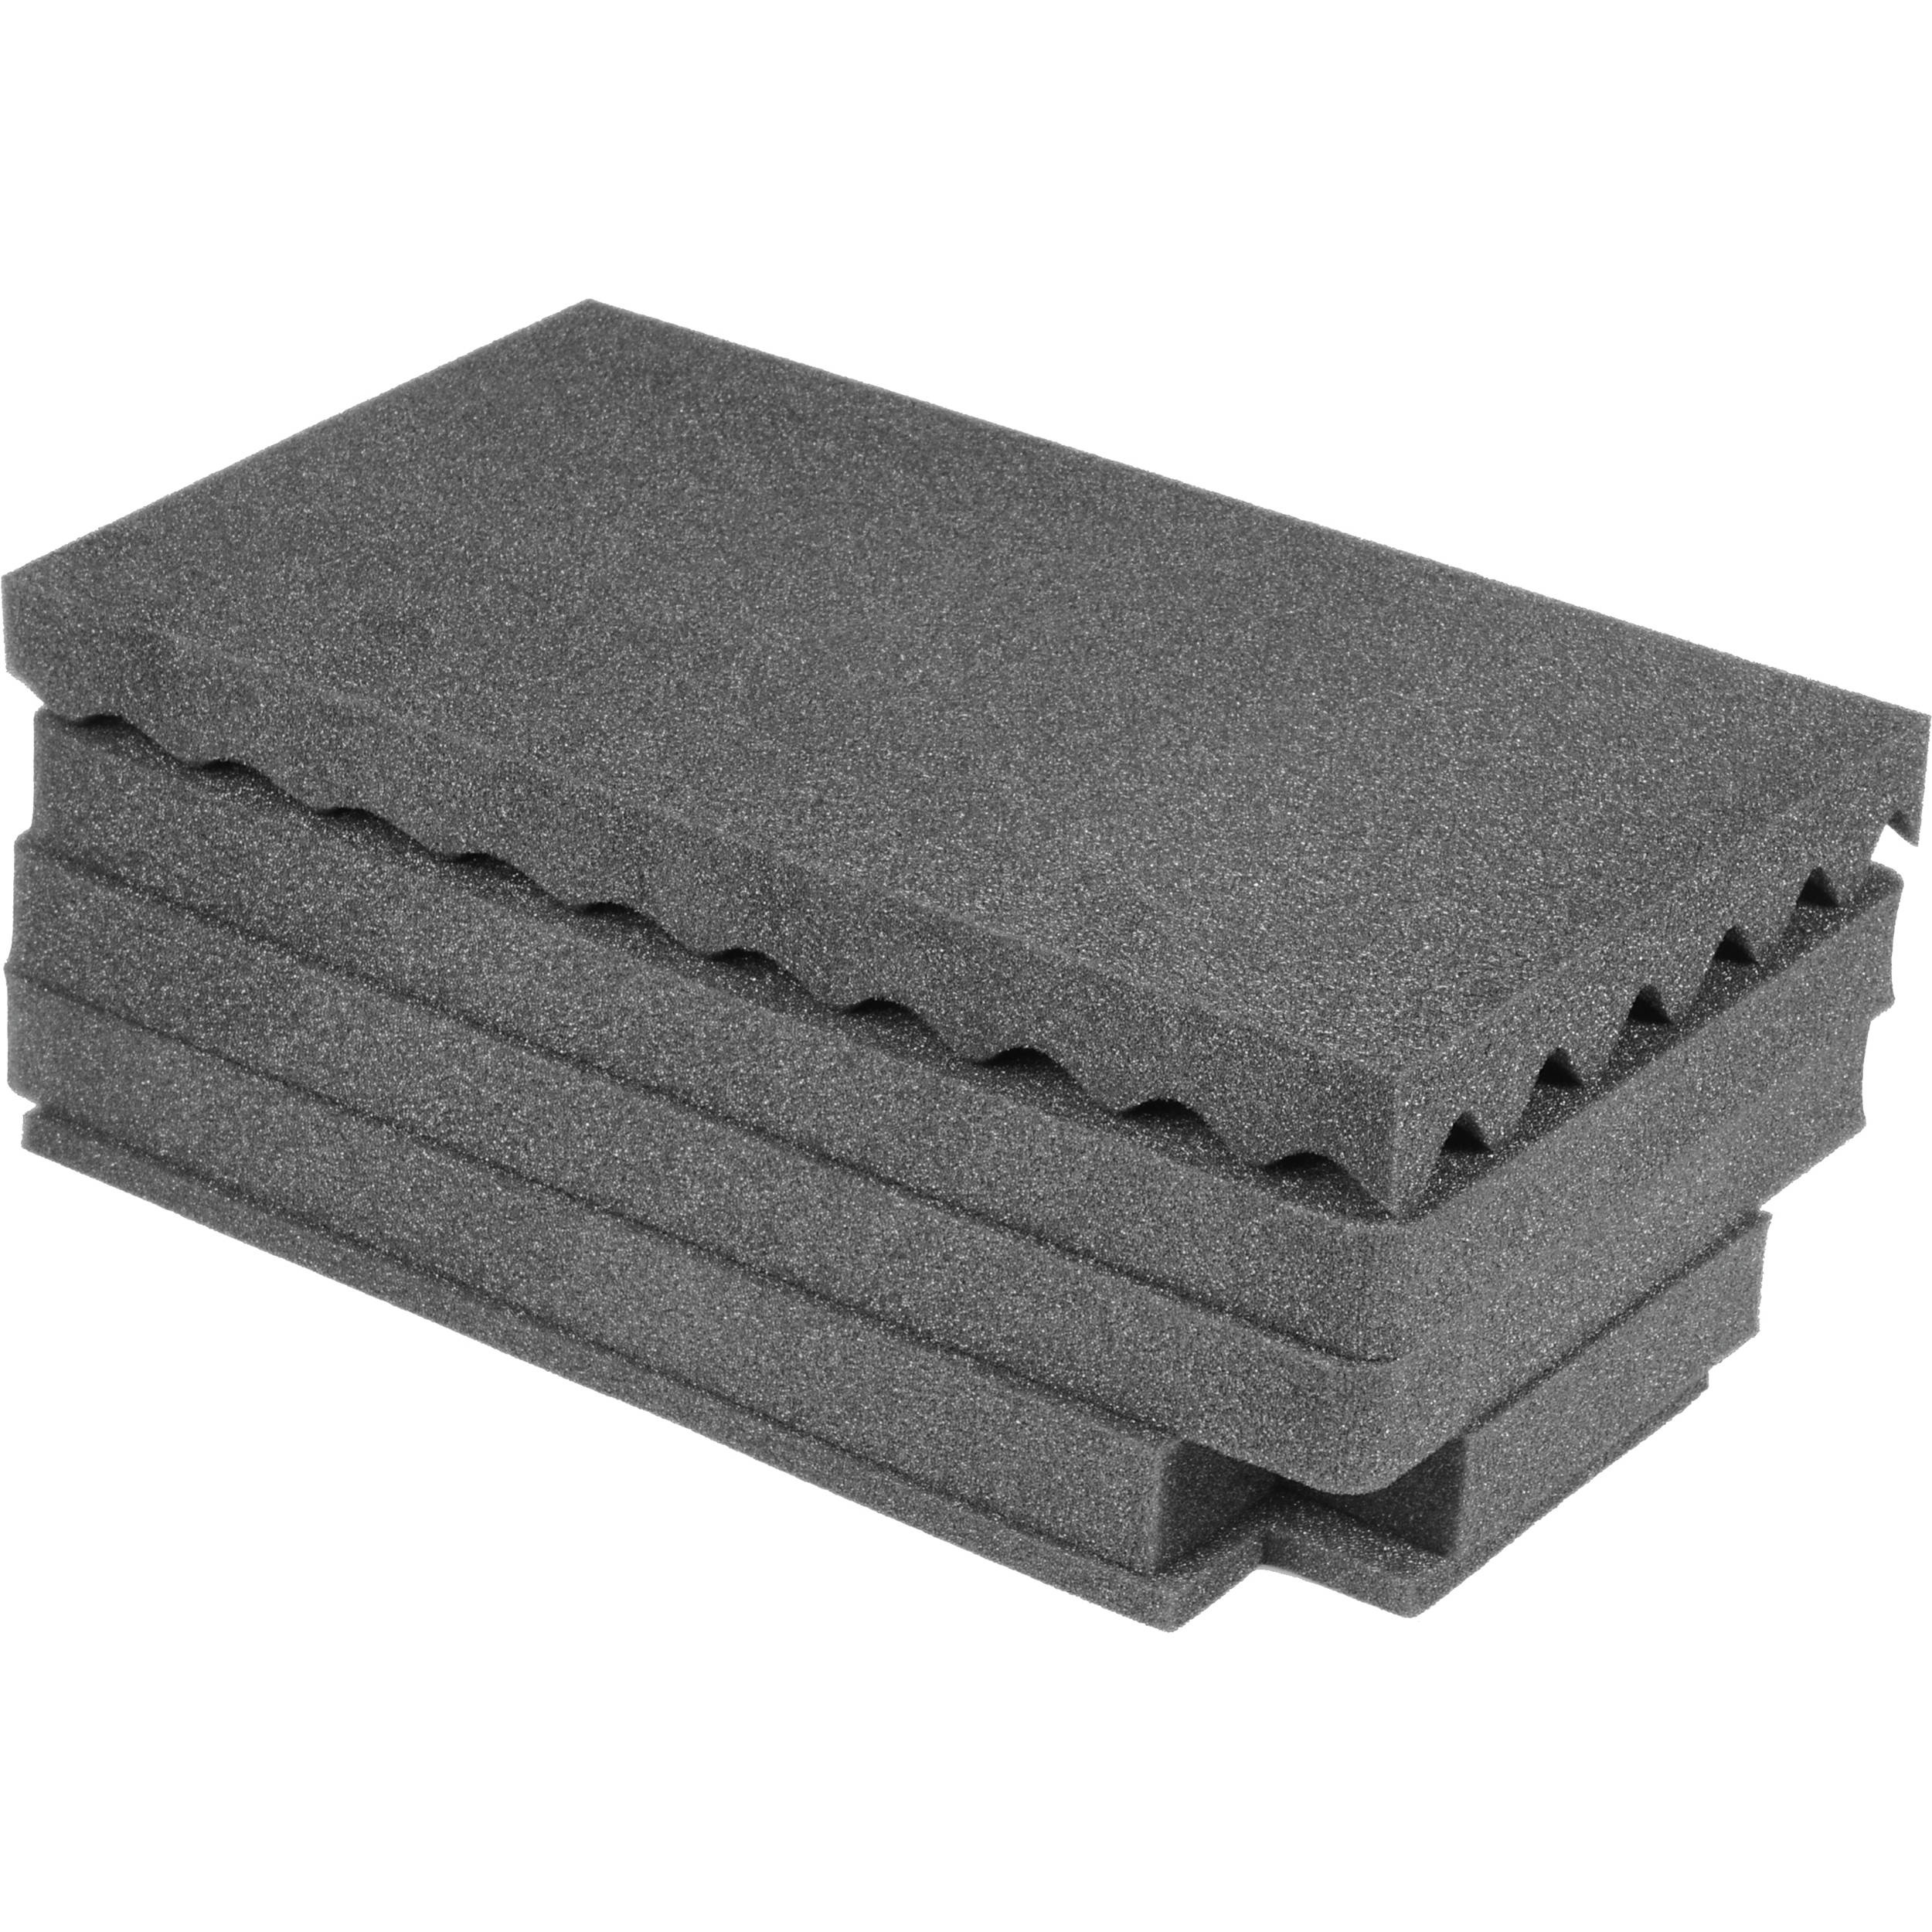 Pelican iM2500 Foam Set